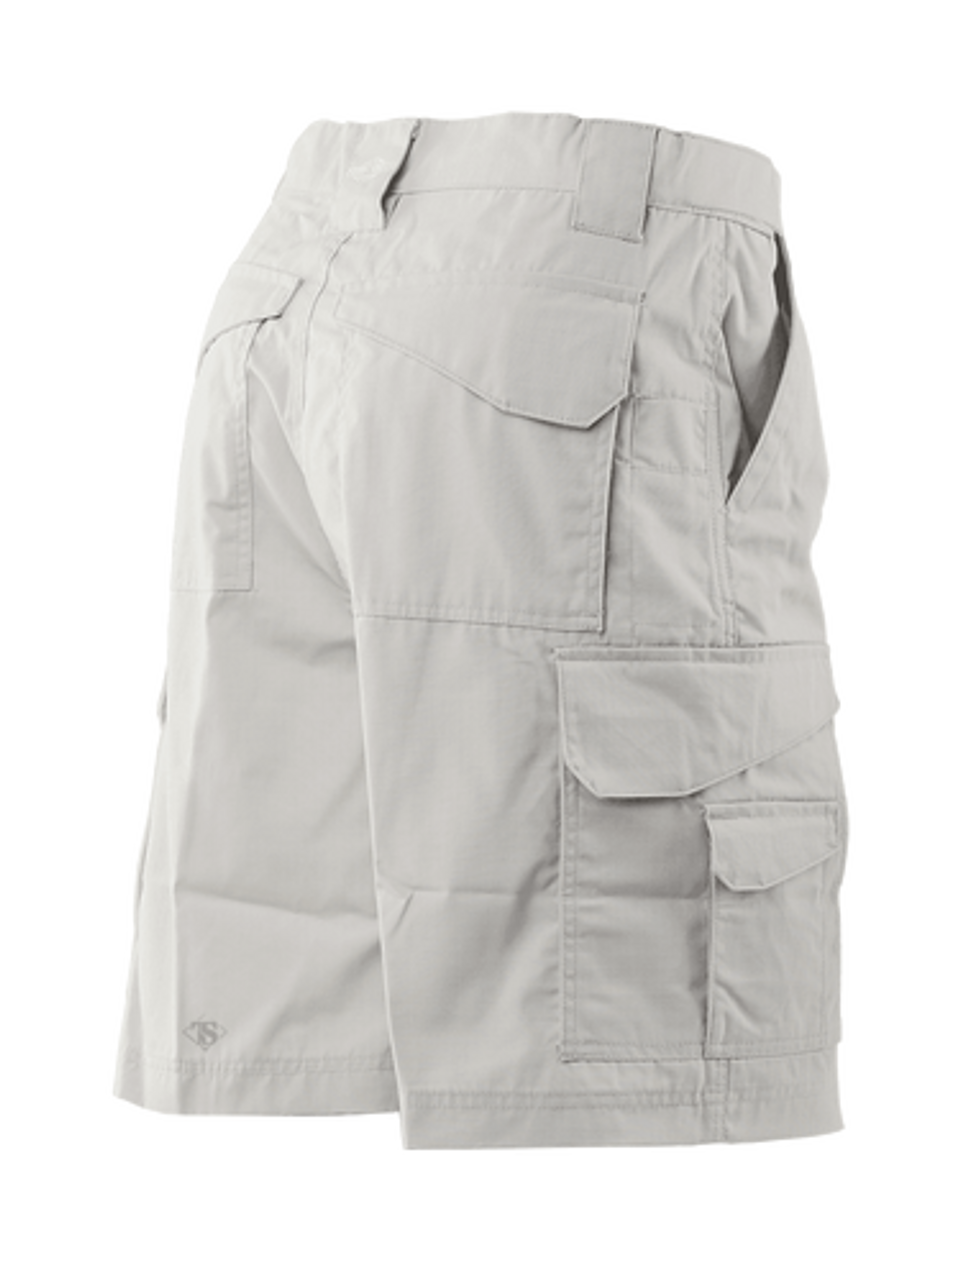 "Tru-Spec 24-7 SERIES® Men's Original Tactical  Shorts, 65% Polyester and 35% Cotton Rip-Stop with DWR water repellent coating and with a 9"" inseam, Extra deep front pockets, Expandable back pockets with hook and loop closure, 4264"